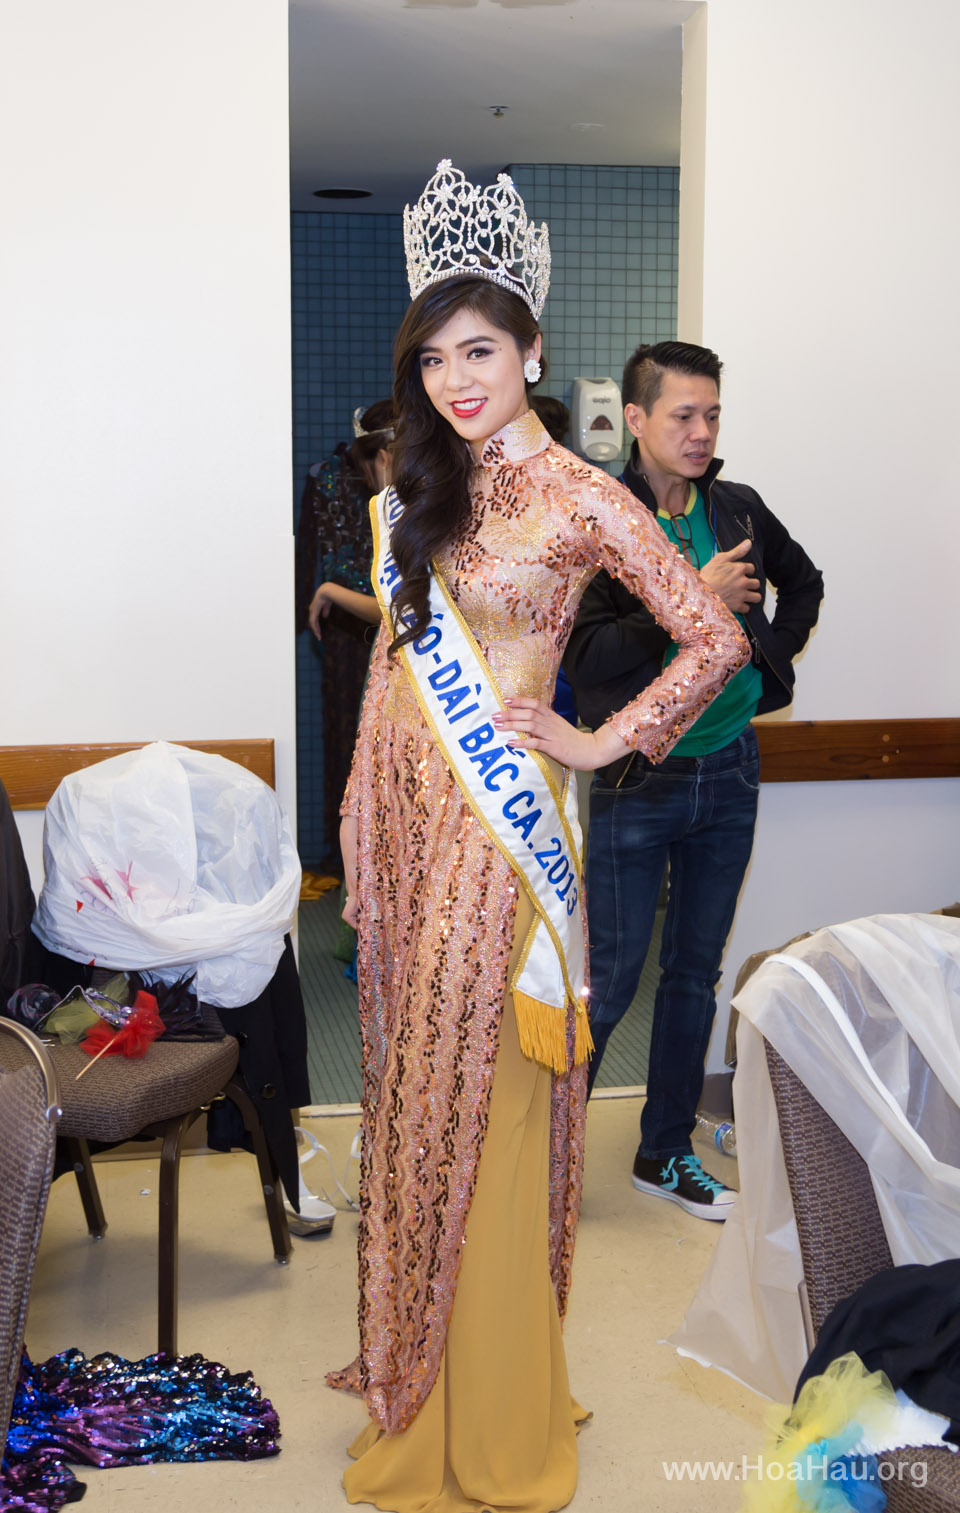 Miss Vietnam of Northern California 2014 - Hoa Hau Ao Dai Bac Cali 2014 - Behind the Scenes - Image 207